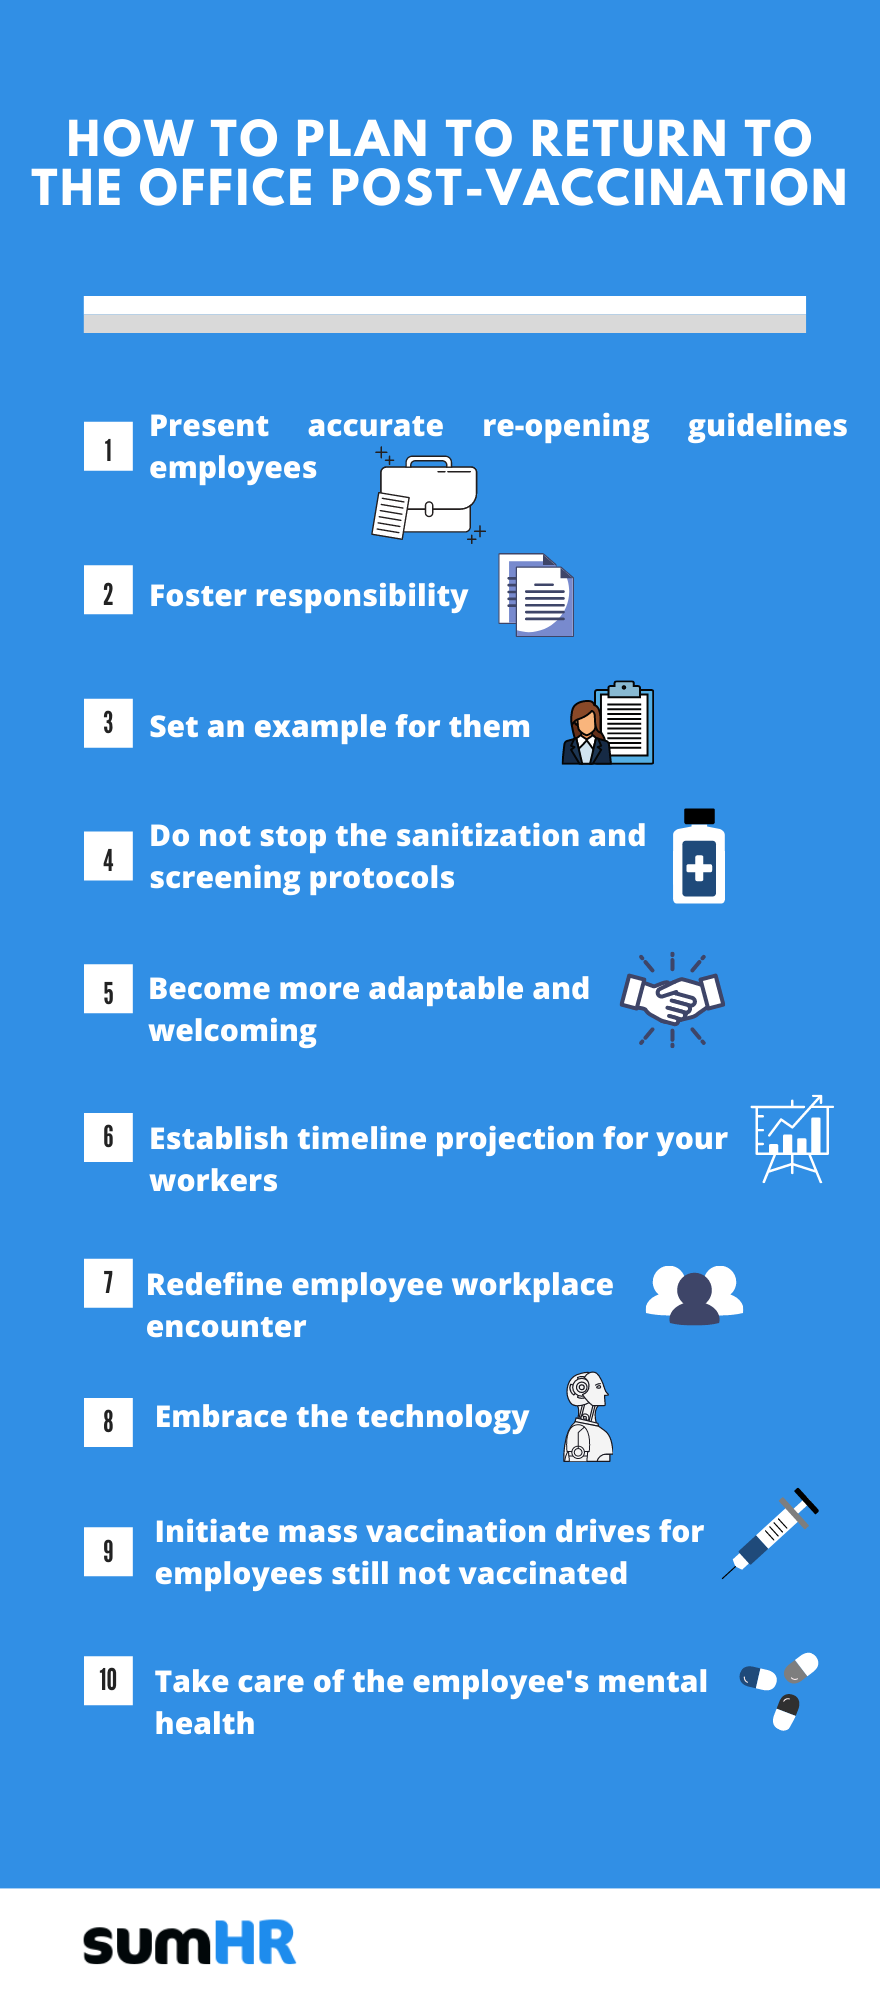 steps to take before you return to the office post-vaccination